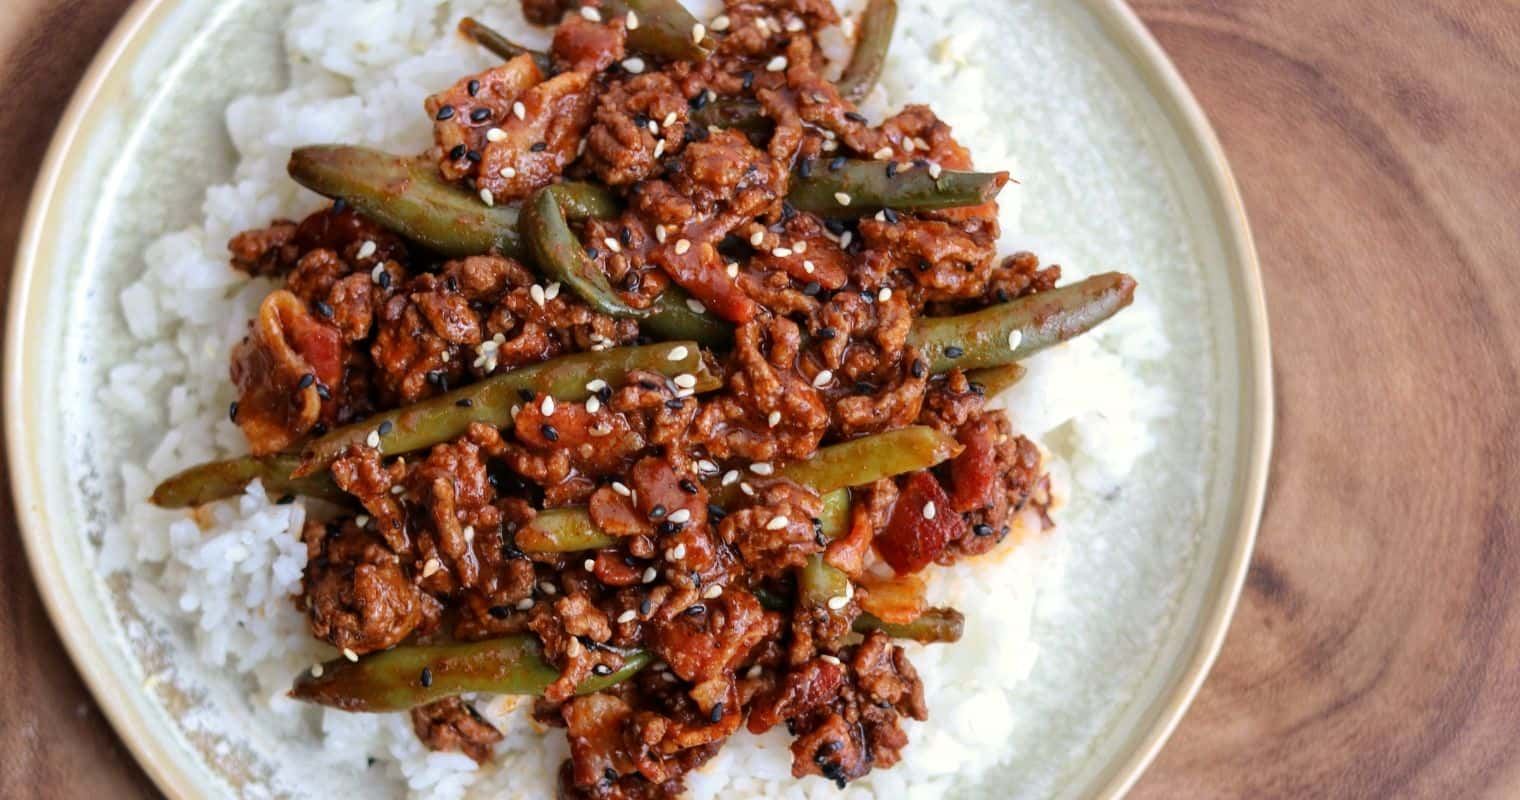 ground beef and green beans on a plate with rice and toasted sesame seeds